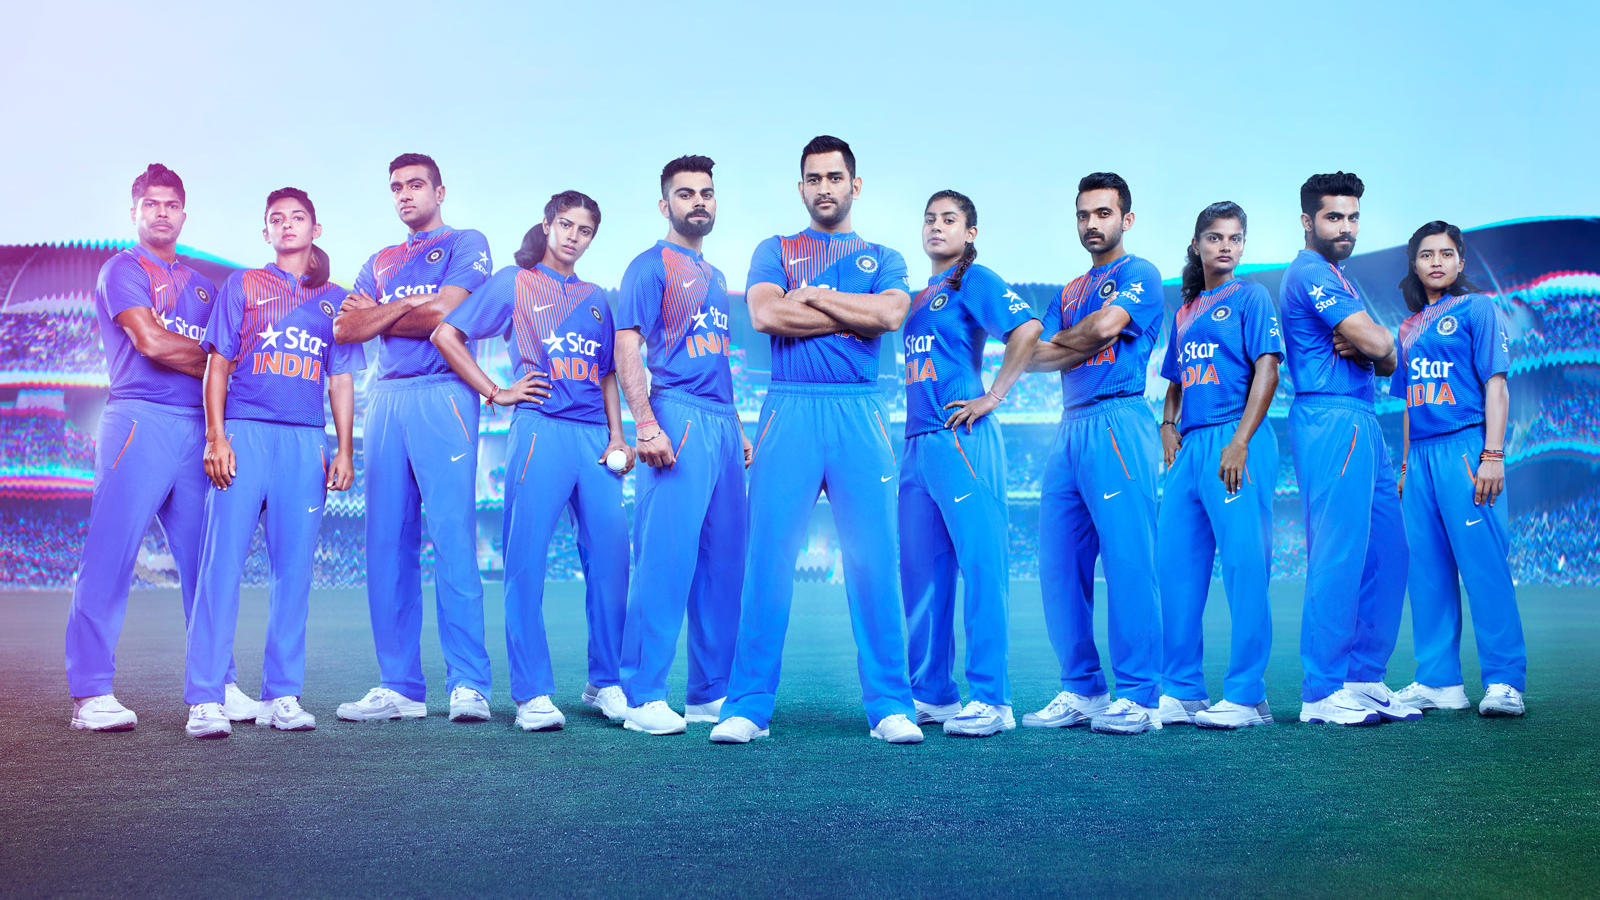 Wallpaper Team India National Cricket Team Indian: The Legacy And Future Of Team India